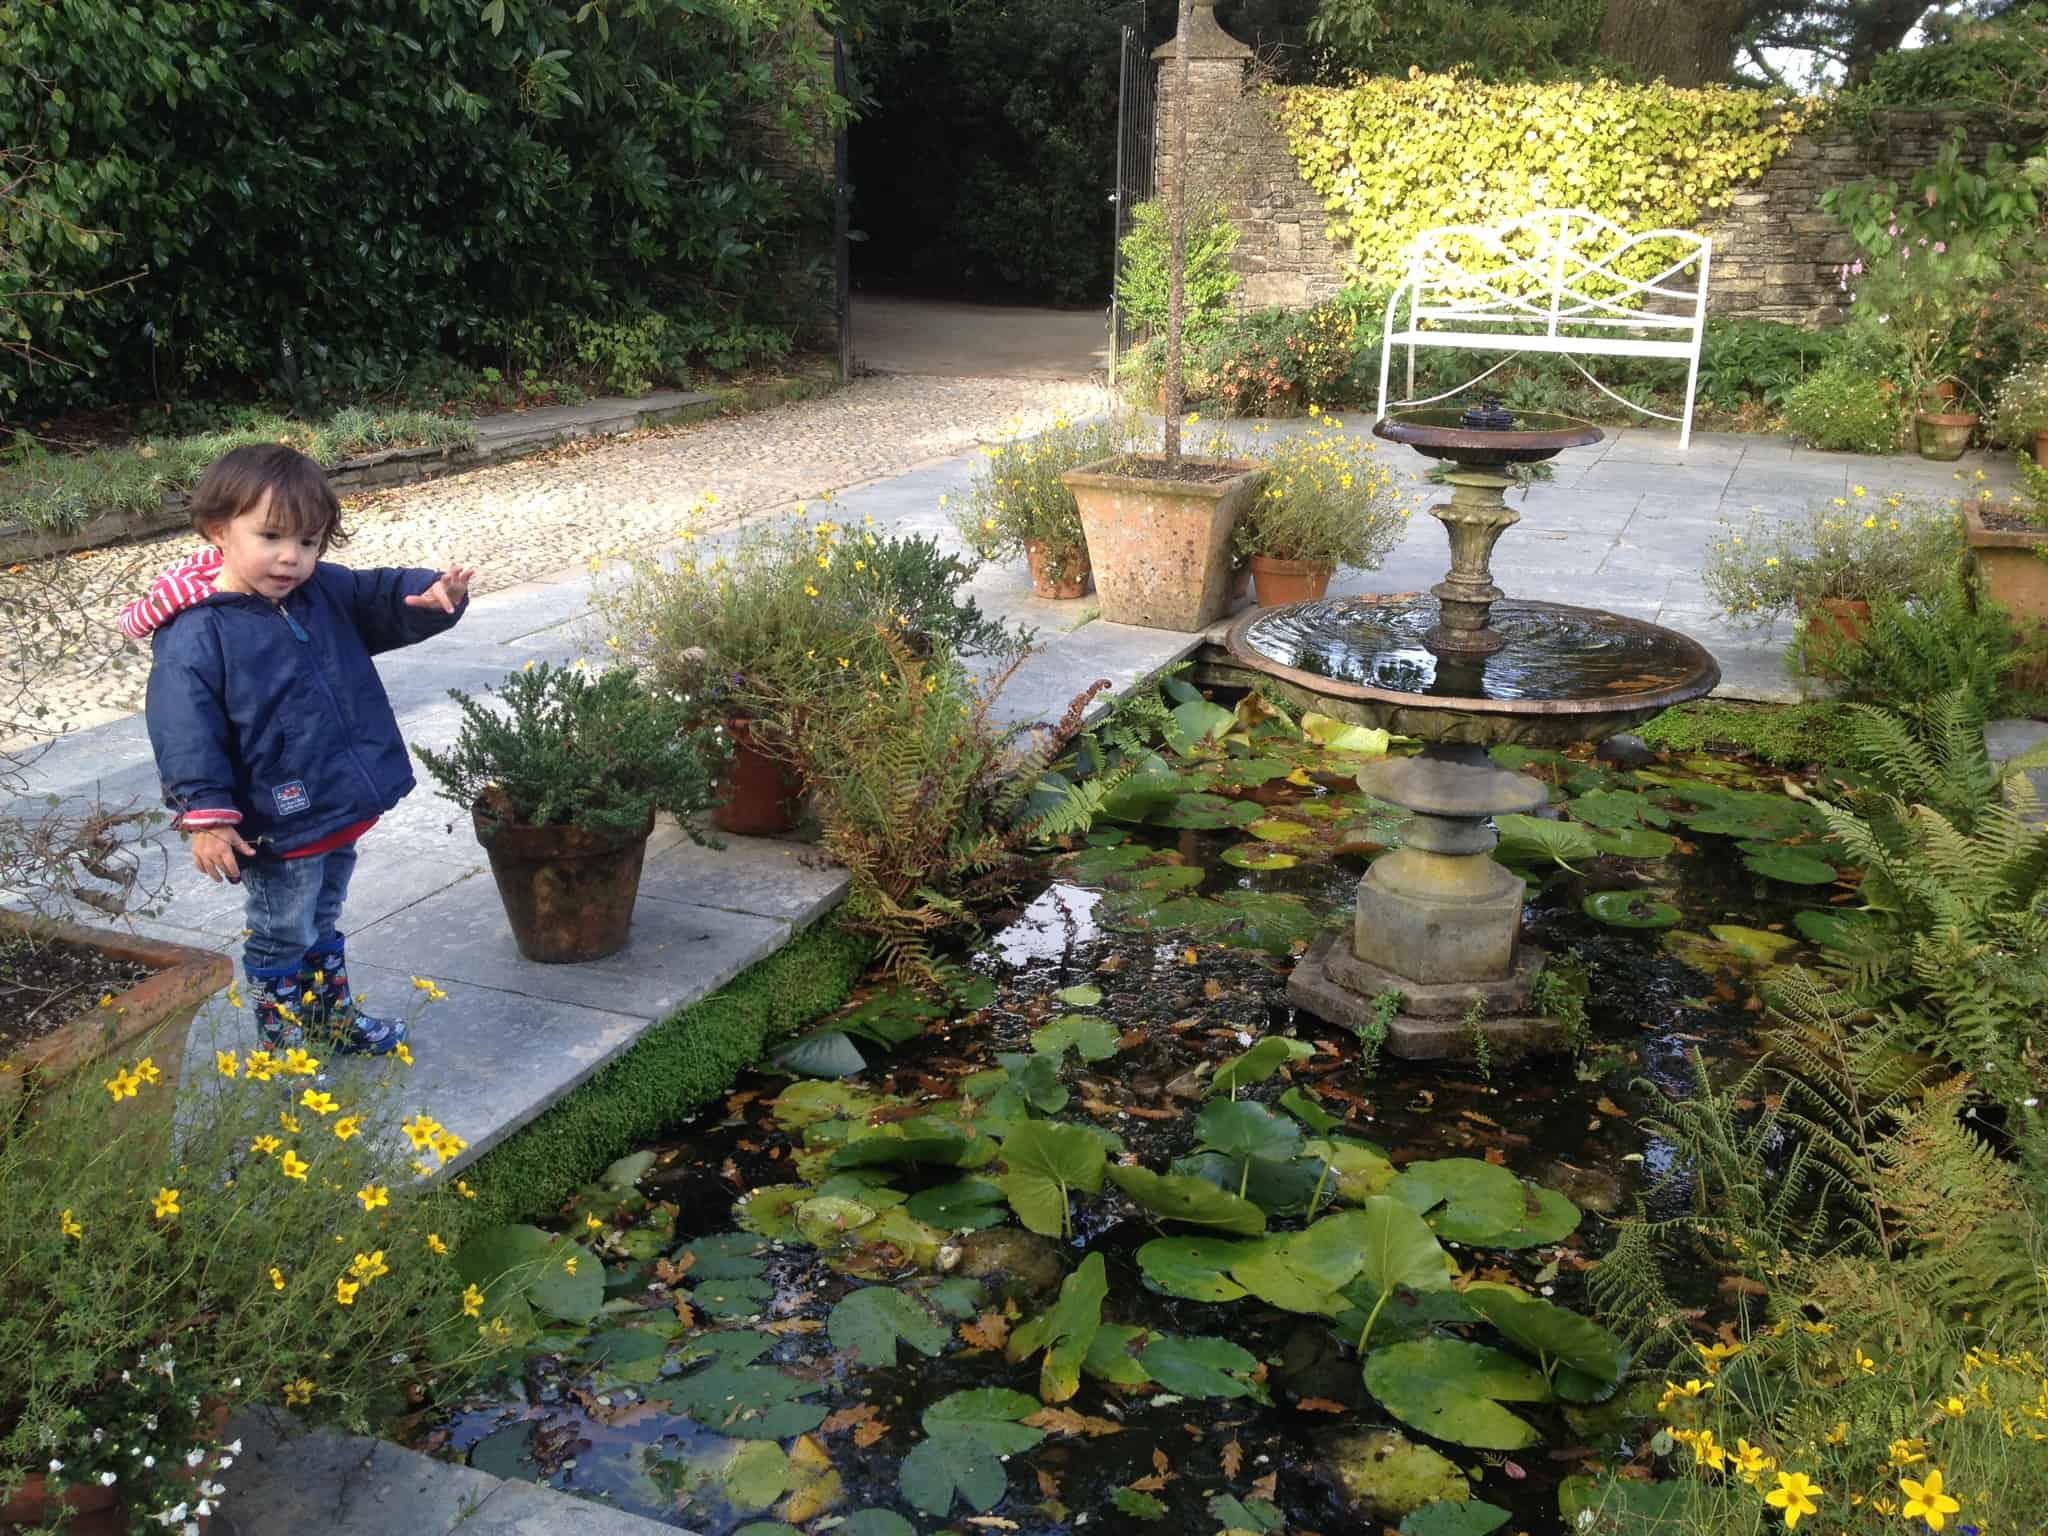 A Familly Day Out At The Lost Gardens of Heligan